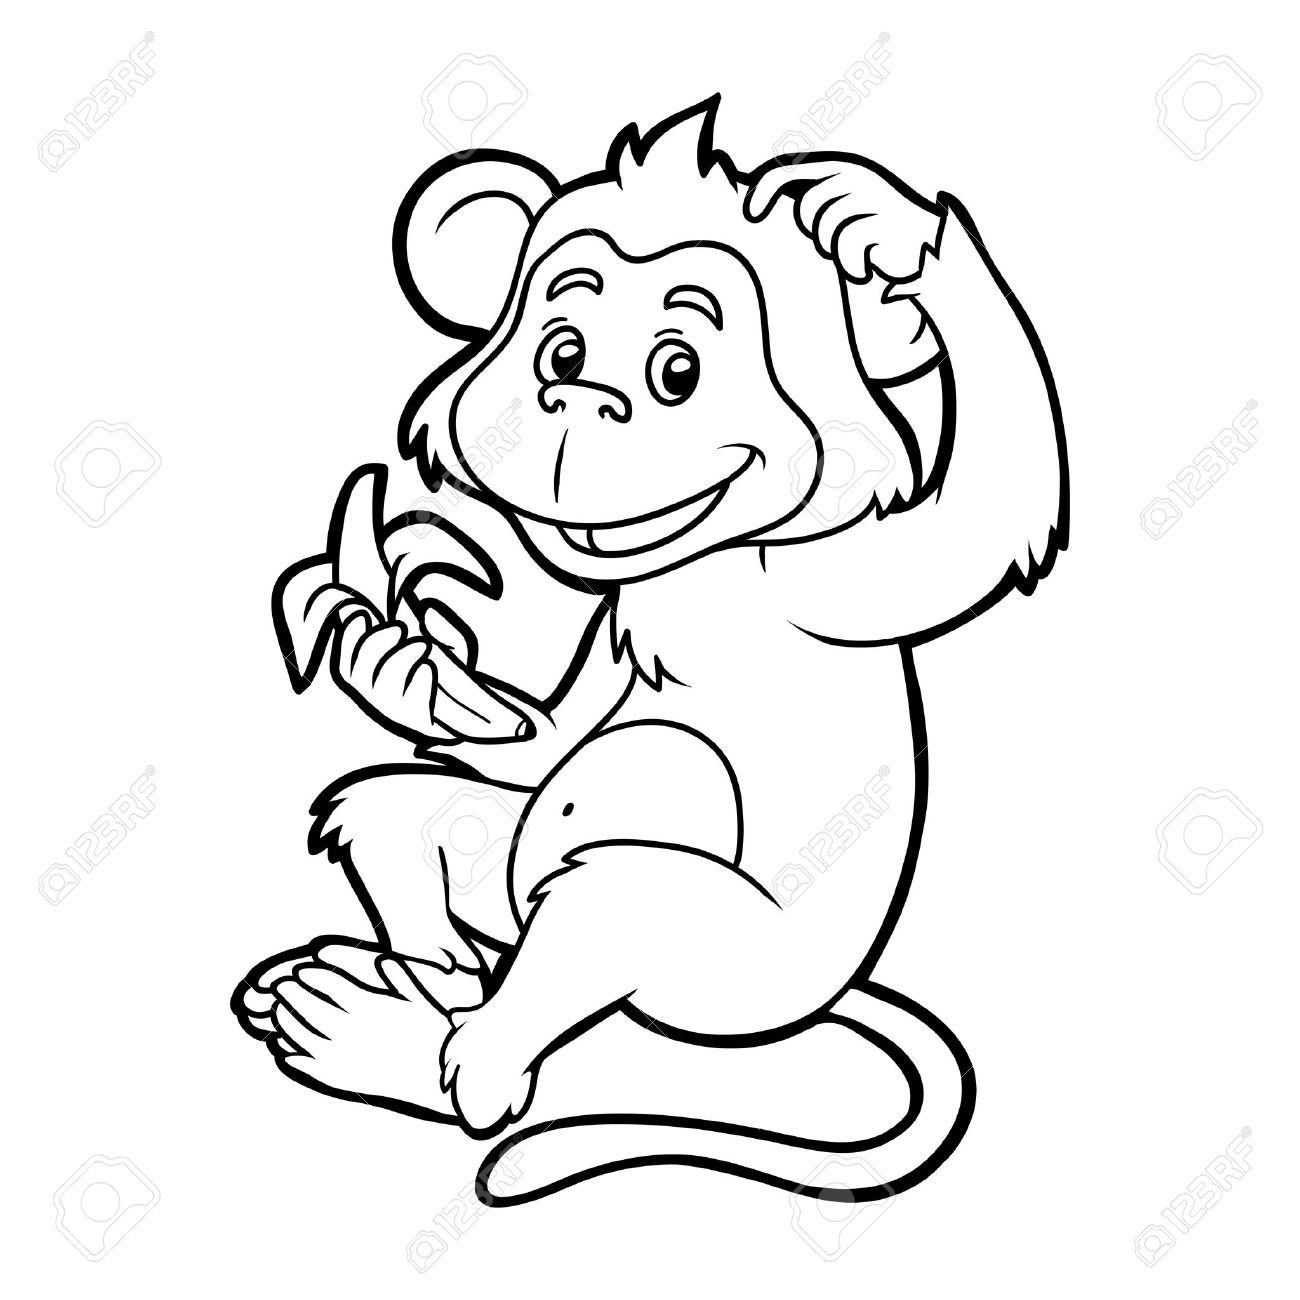 Beautiful 1300x1300 Coloring Book For Children Monkey With A Banana Royalty On Line